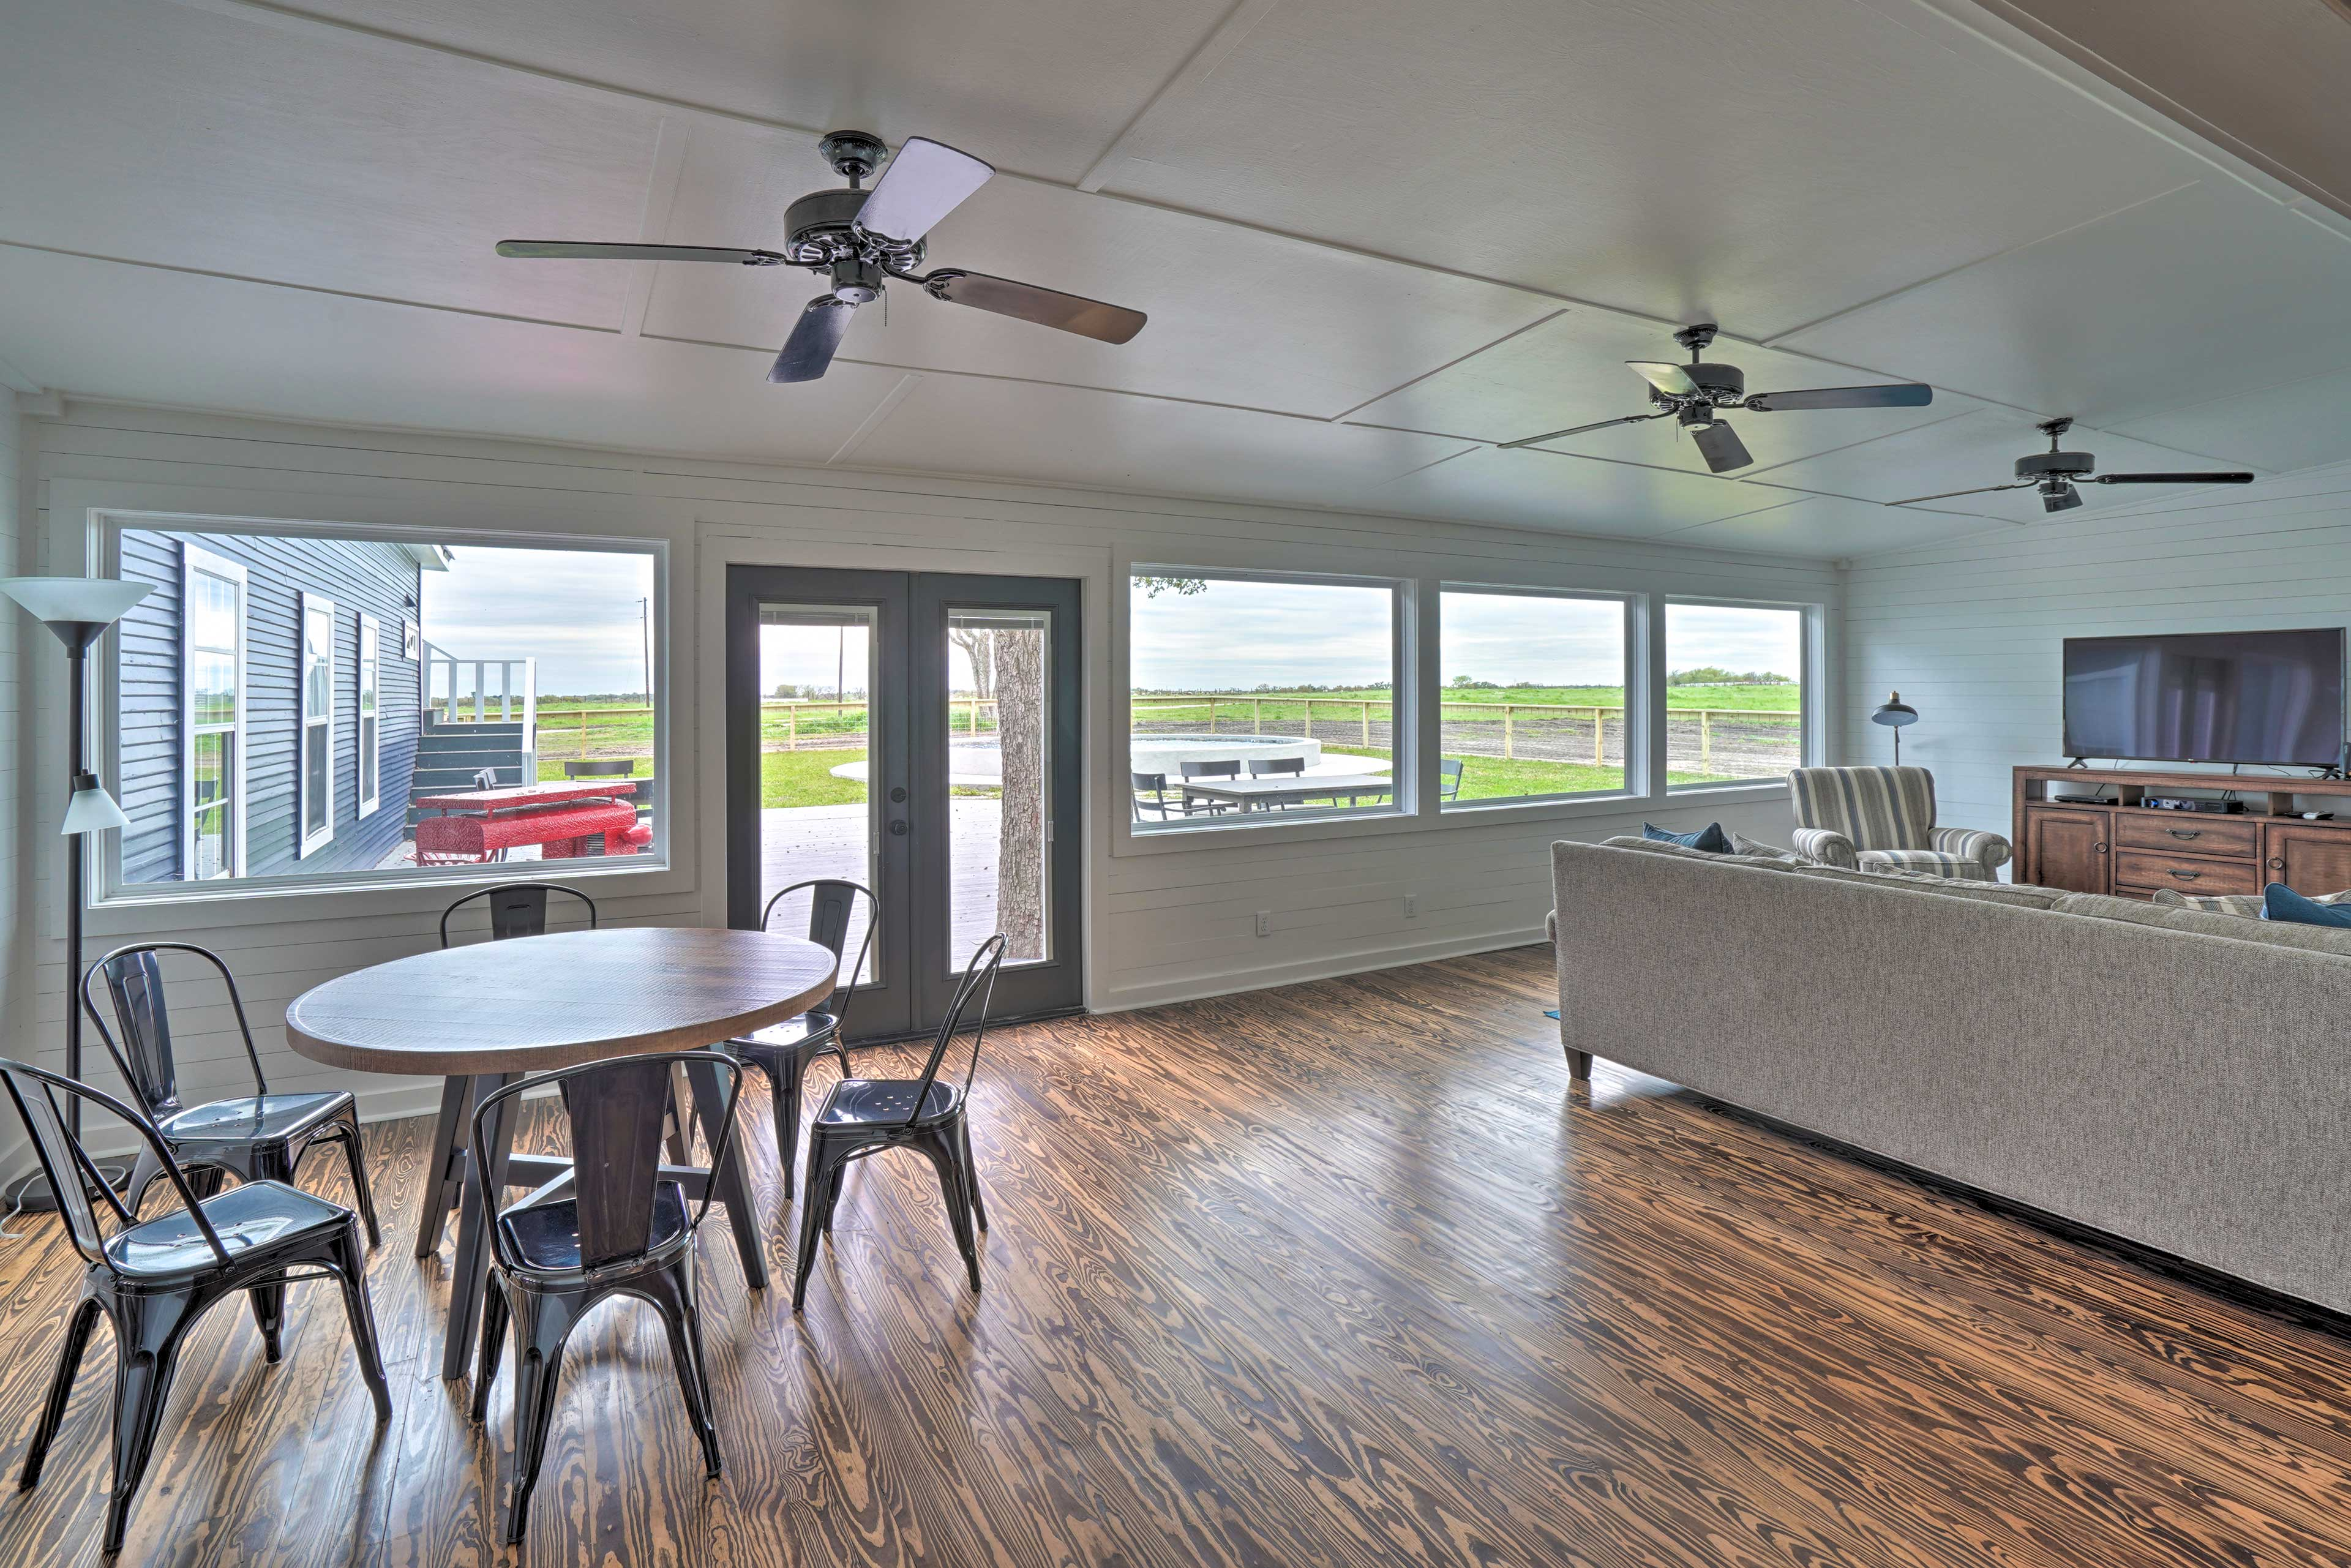 Large picture windows fill the space with natural light.